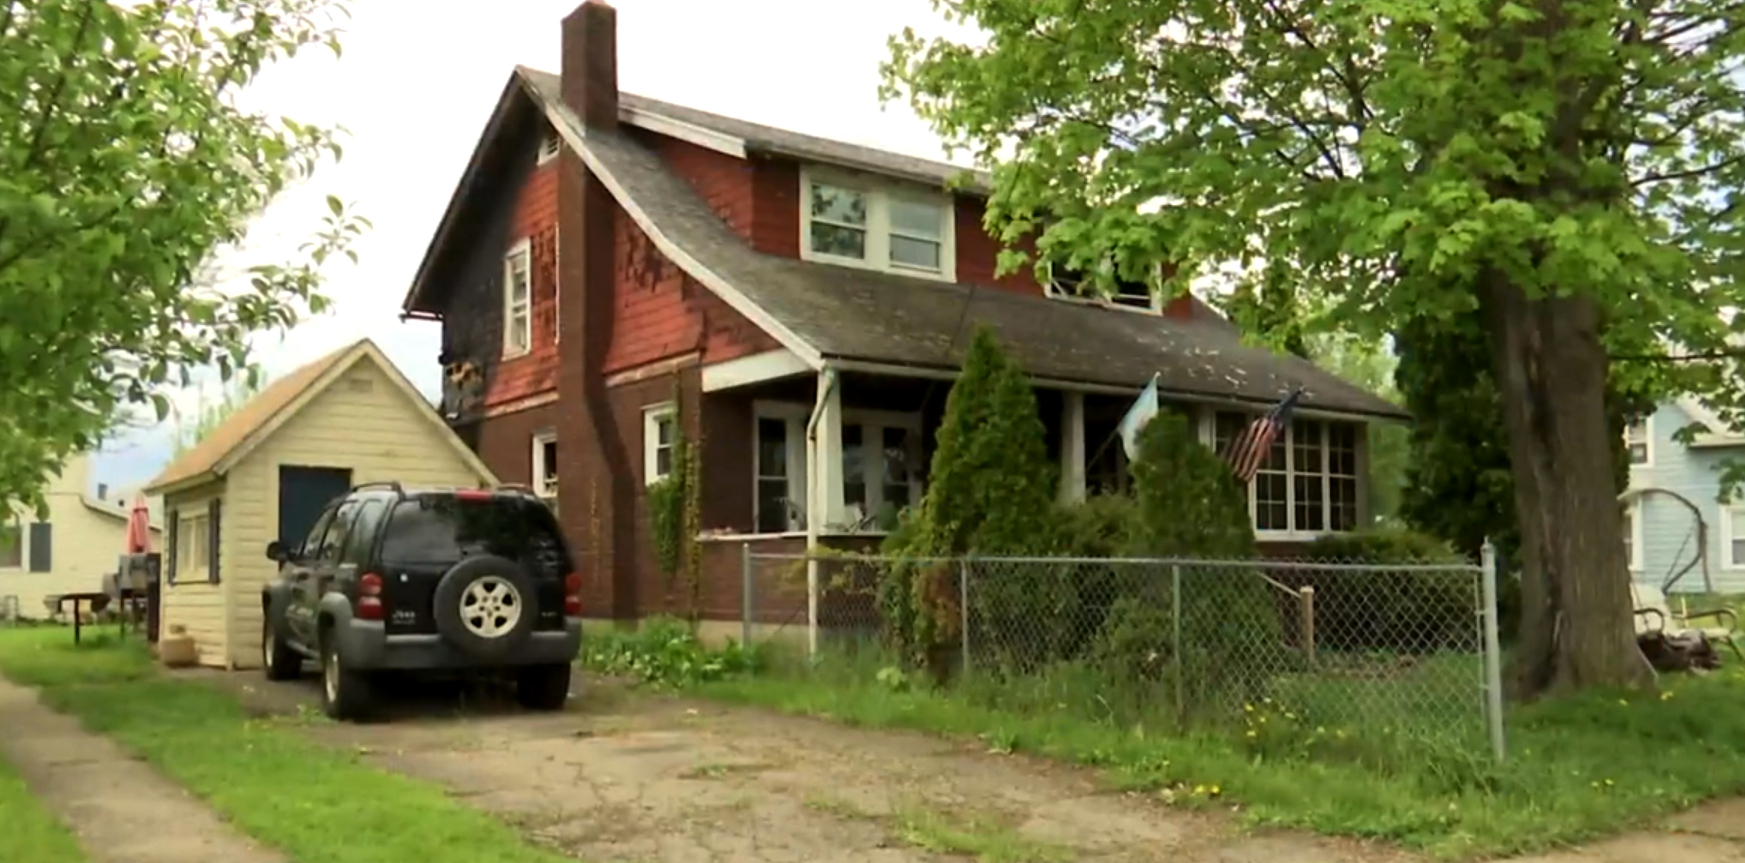 Brothers allegedly left grandma to die in fire while they saved meth equipment